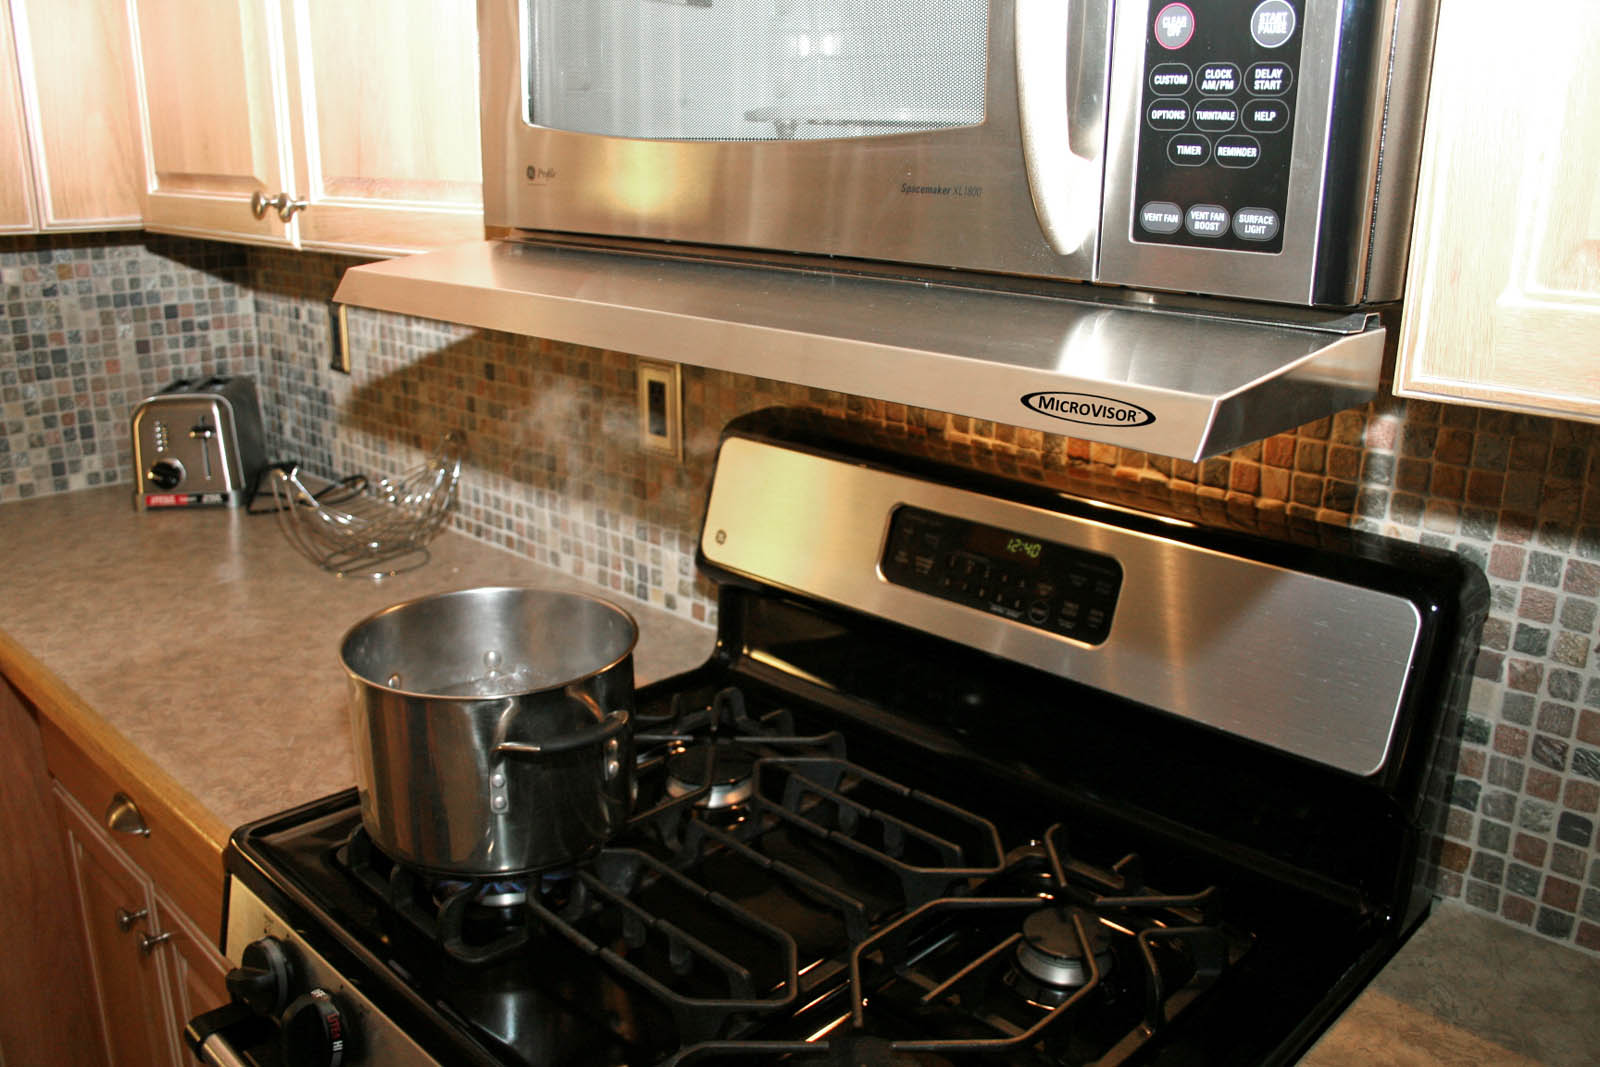 microvisor microwave over the range removable mini hood extension stainless steel